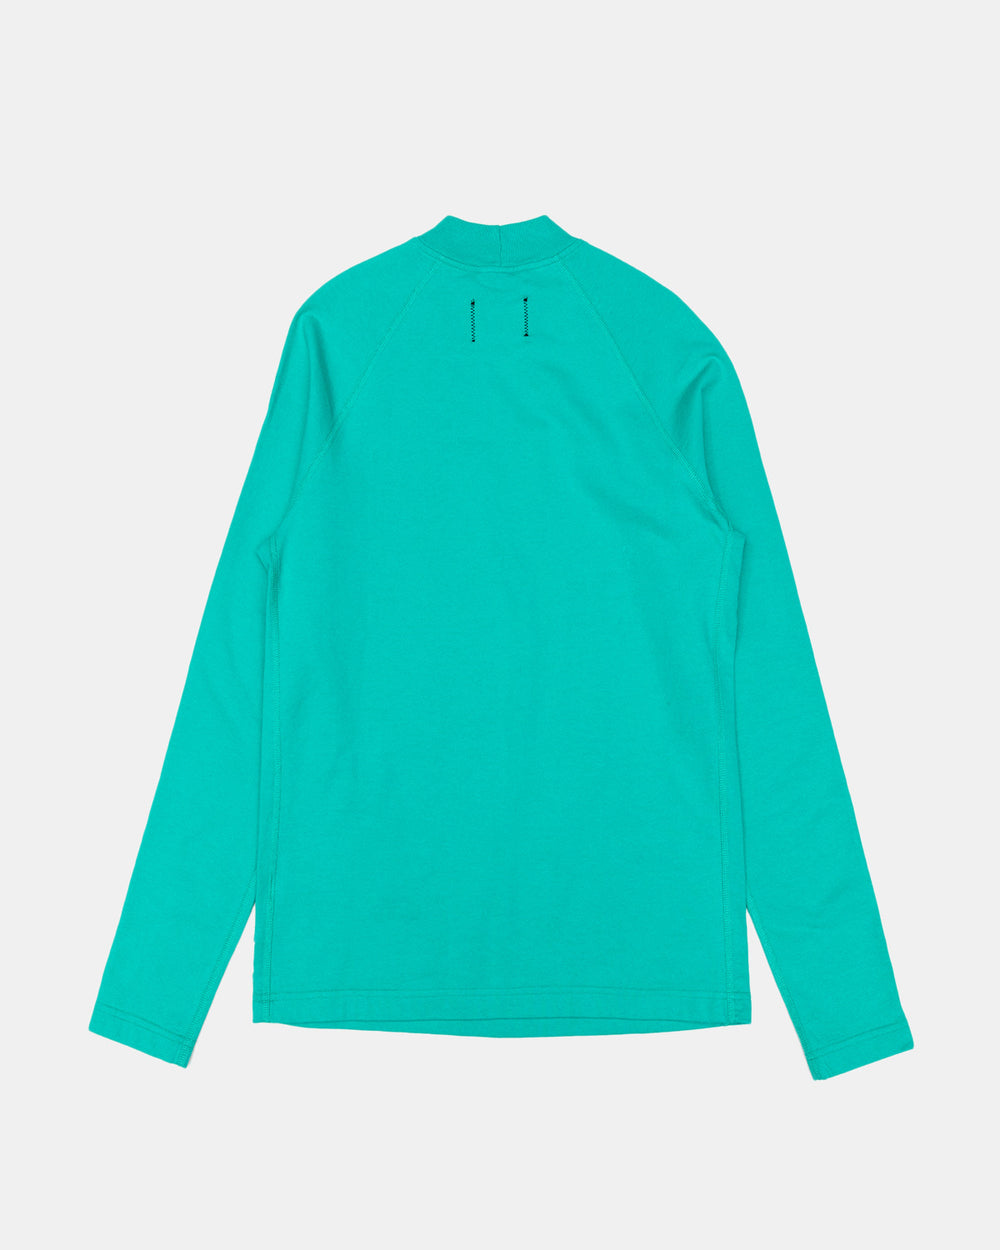 Reigning Champ - Retreat Sweatshirt (Teal)